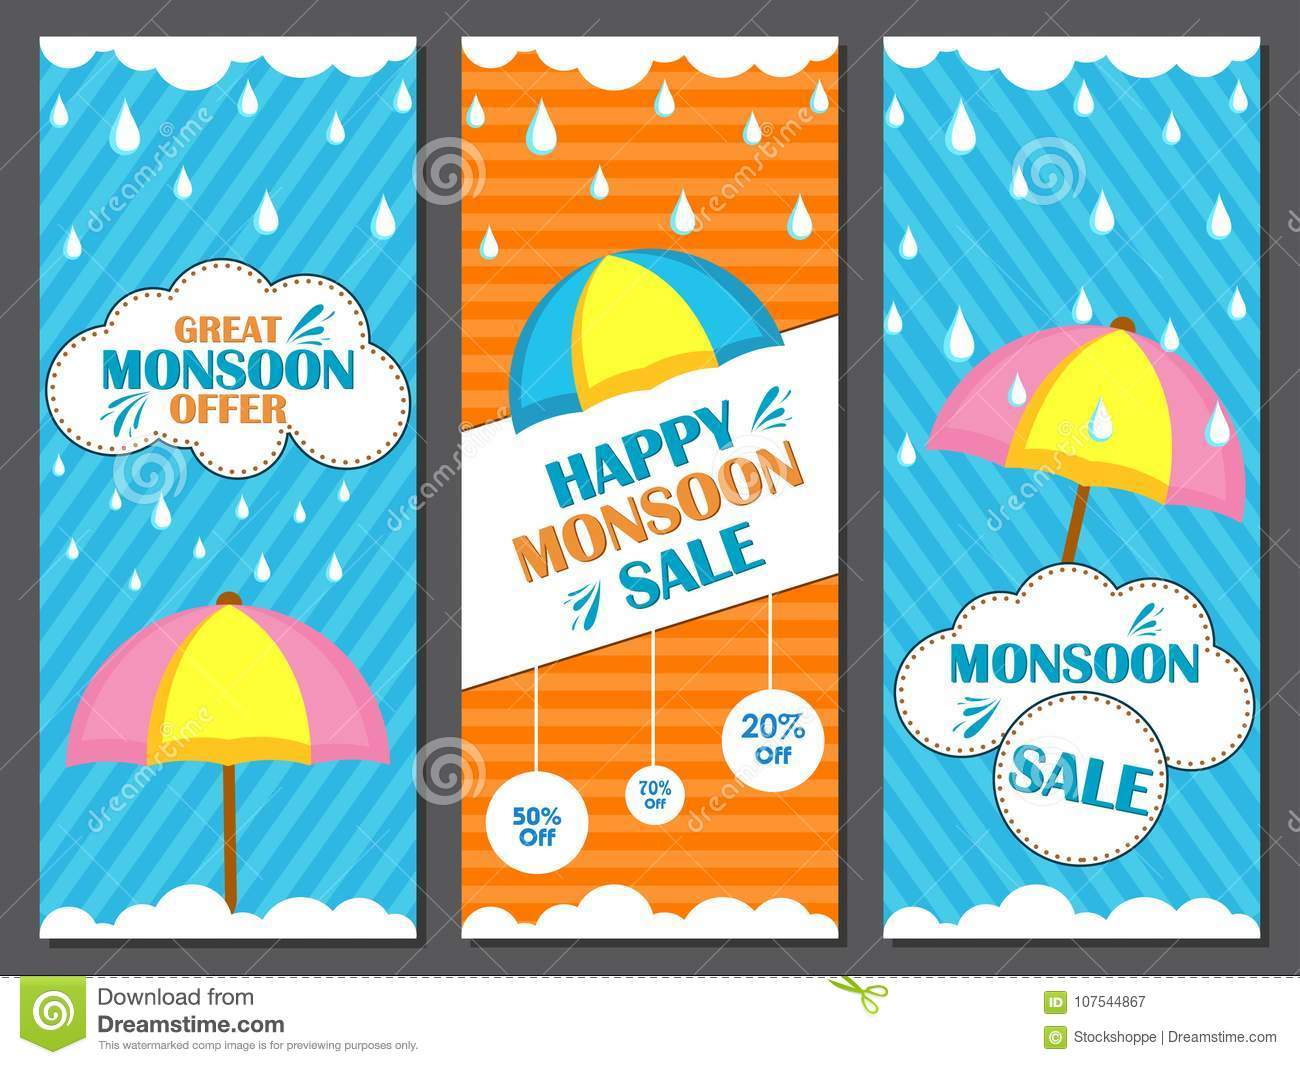 happy monsoon sale offer promotional and advertisment banner stock